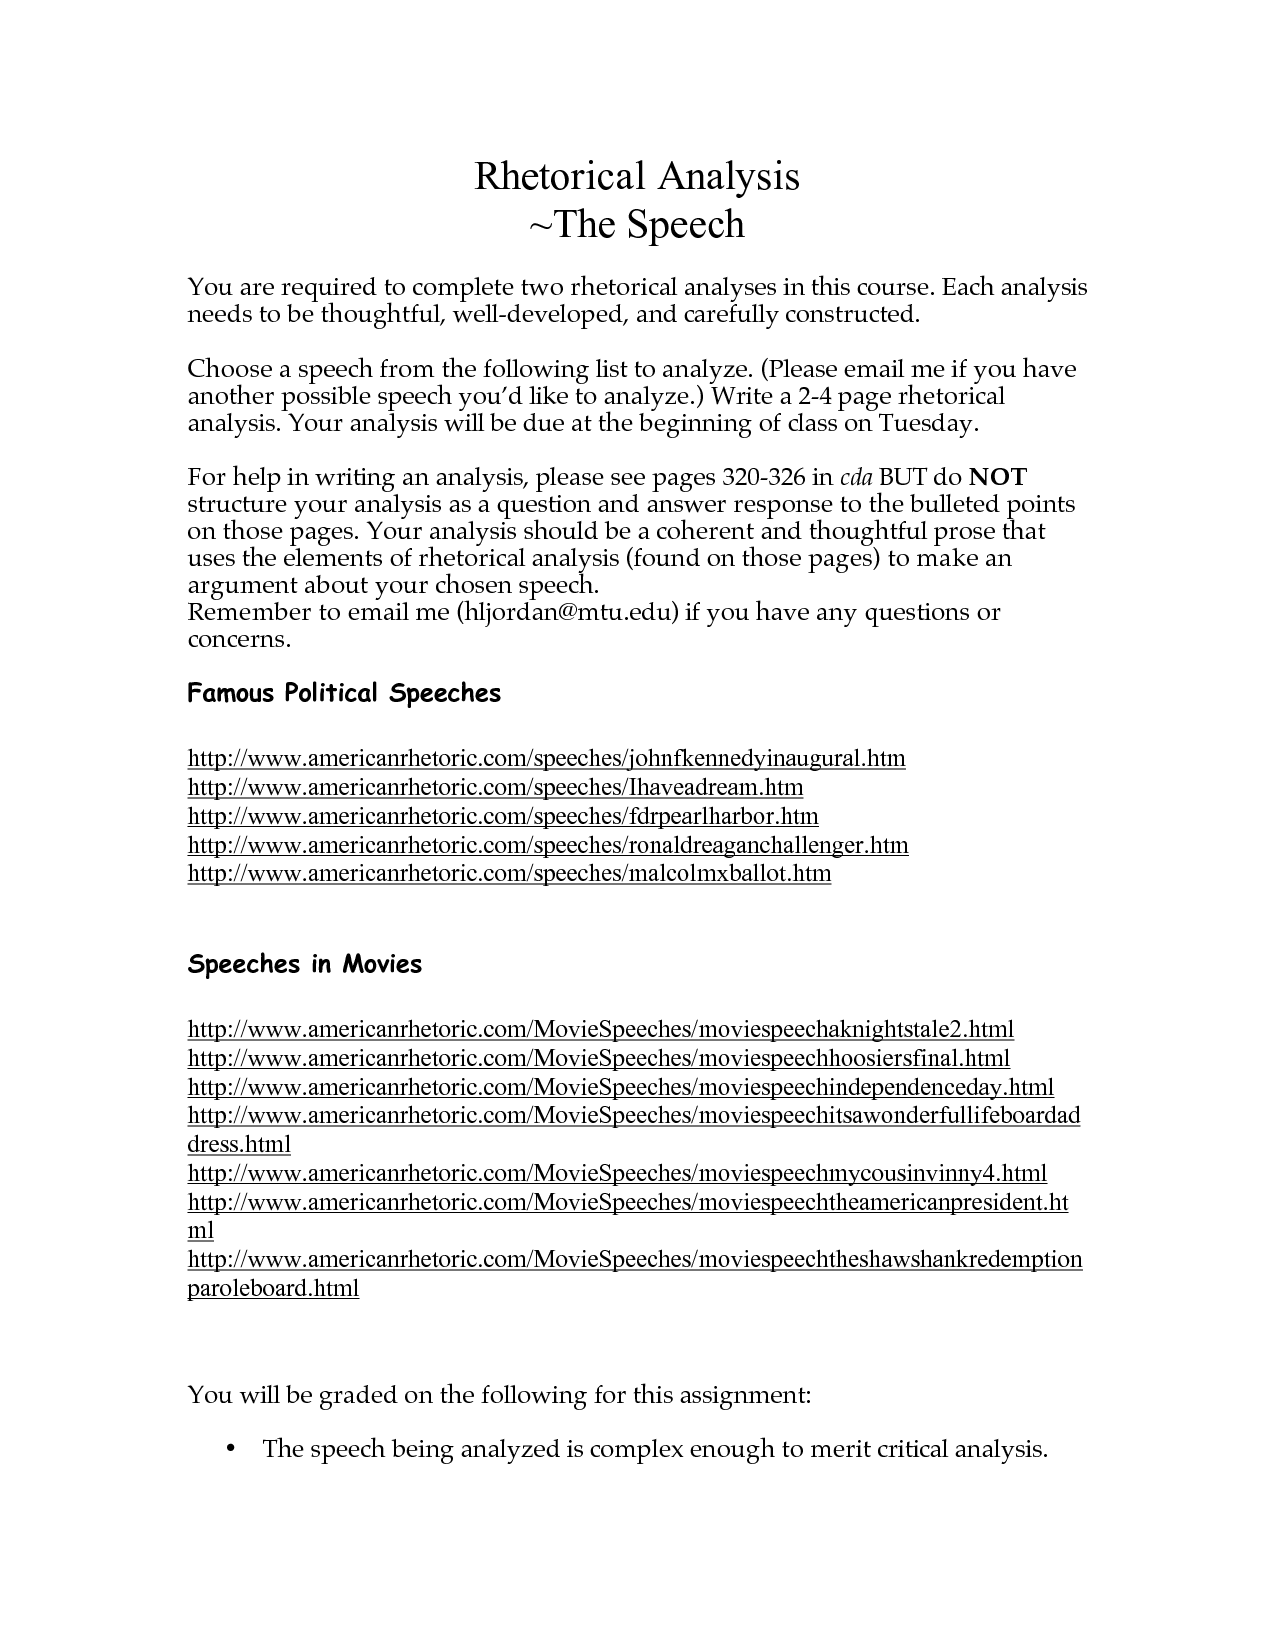 Speechysis Template